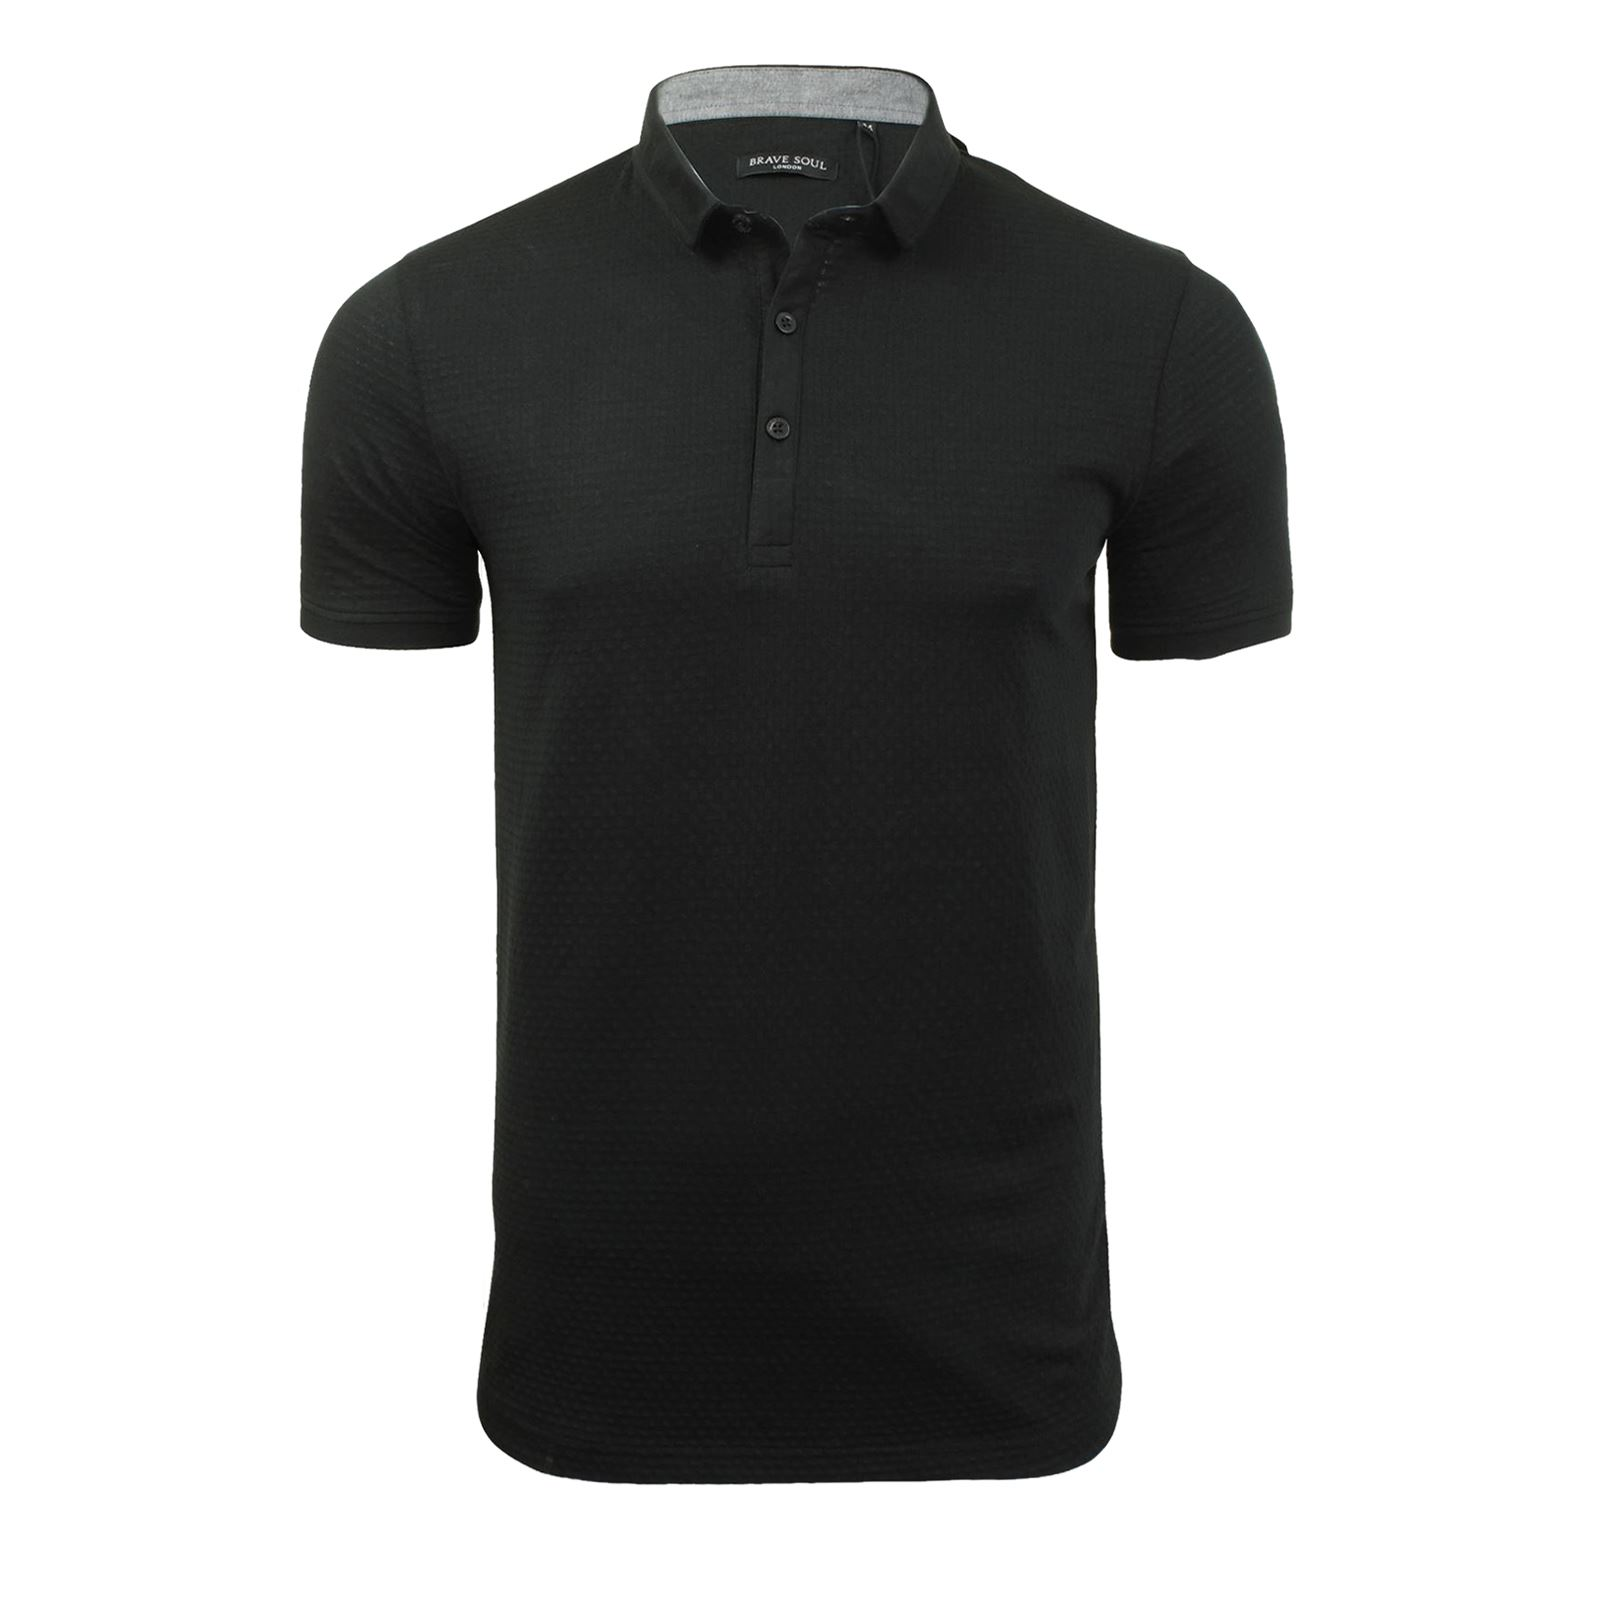 Brave-Soul-Glover-Mens-Polo-T-Shirt-Cotton-Collared-Short-Sleeve-Casual-Top thumbnail 85